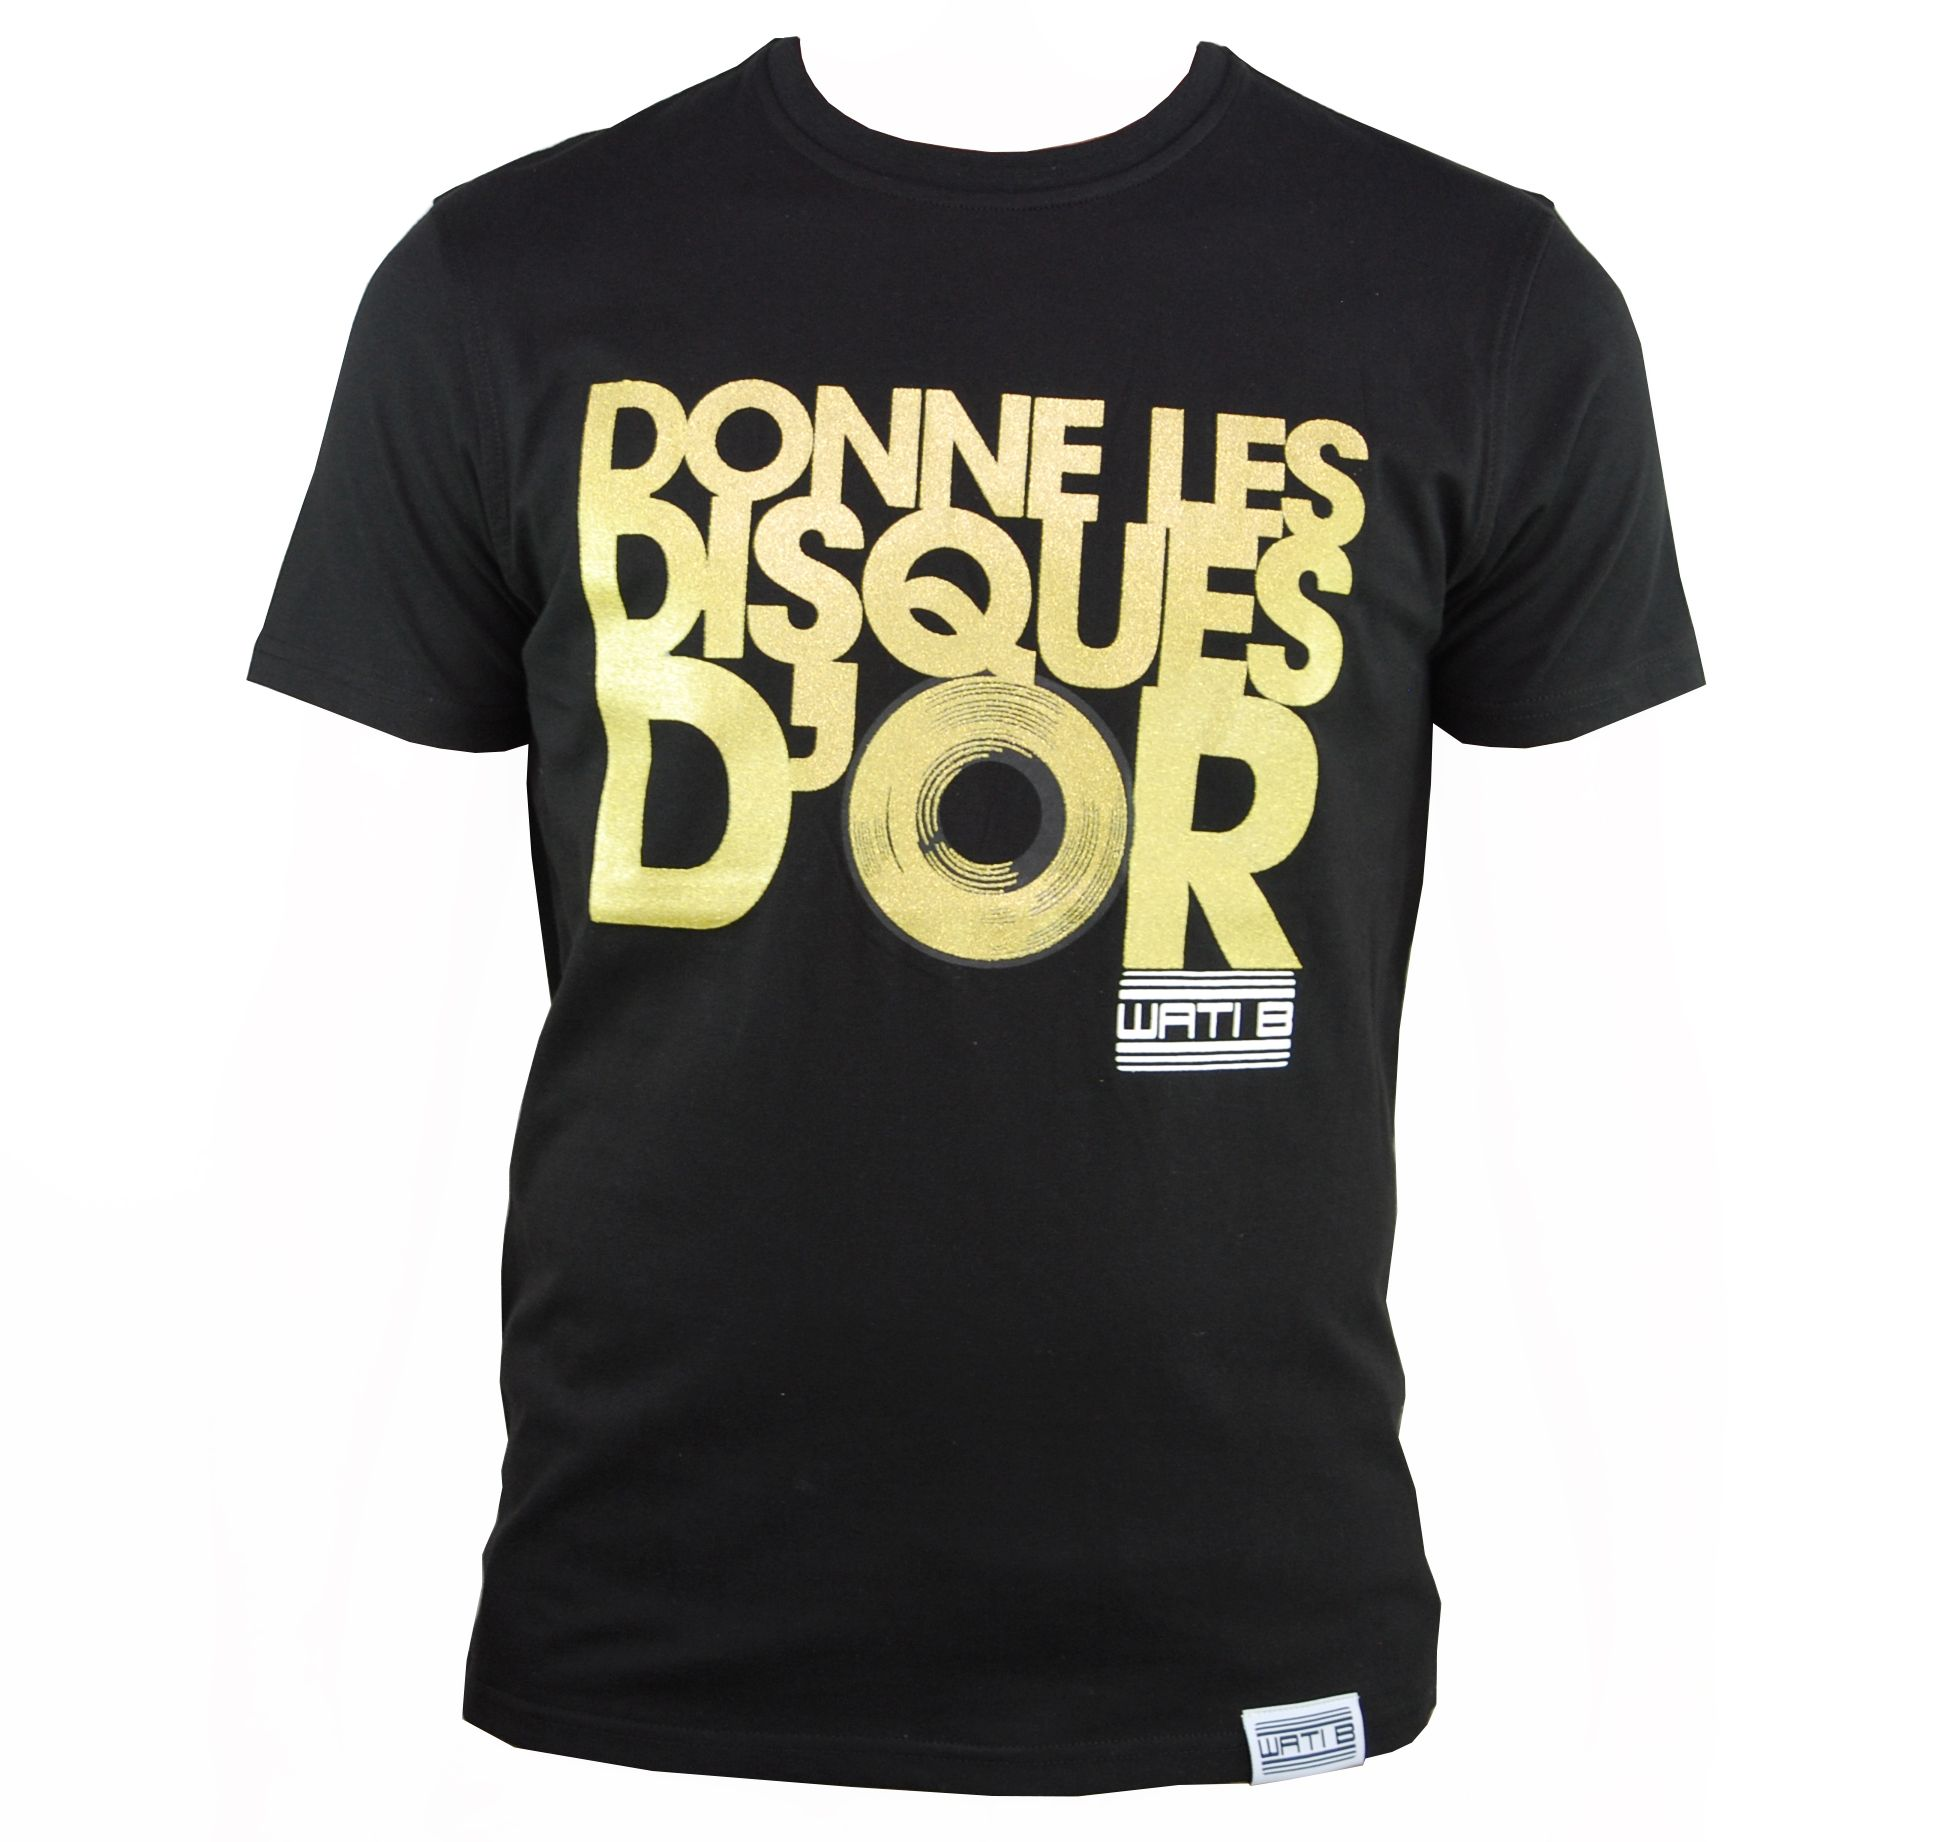 t shirt wati b enfant noir or donne les disques d 39 or by sexion d 39 assaut ebay. Black Bedroom Furniture Sets. Home Design Ideas